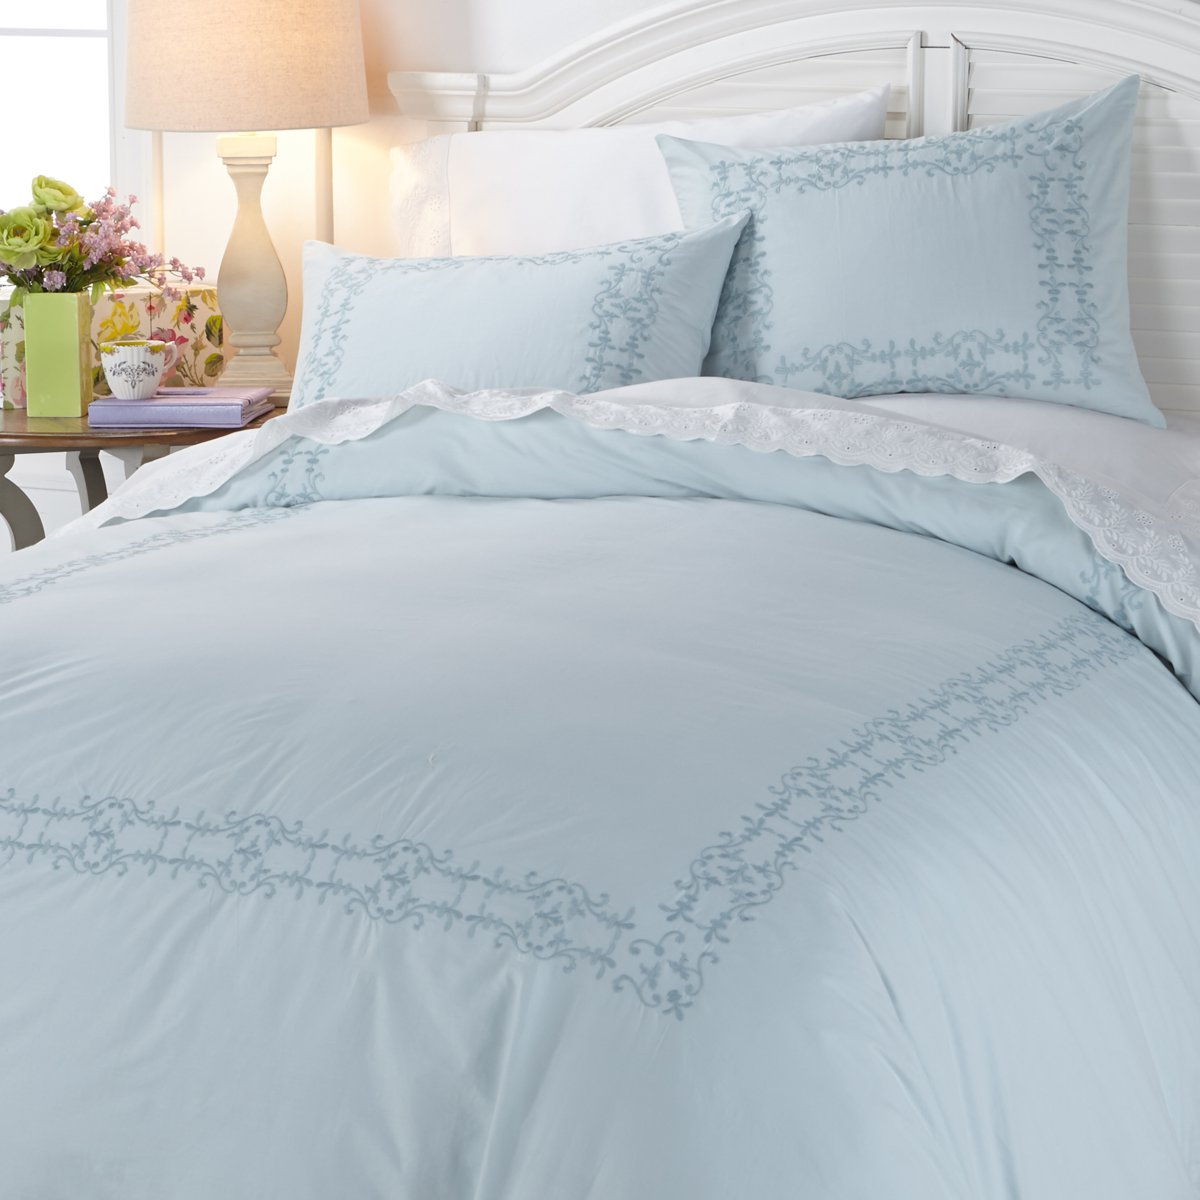 Winners Duvet Covers Anna Griffin Home Sneak Preview And Contest Anna Griffin